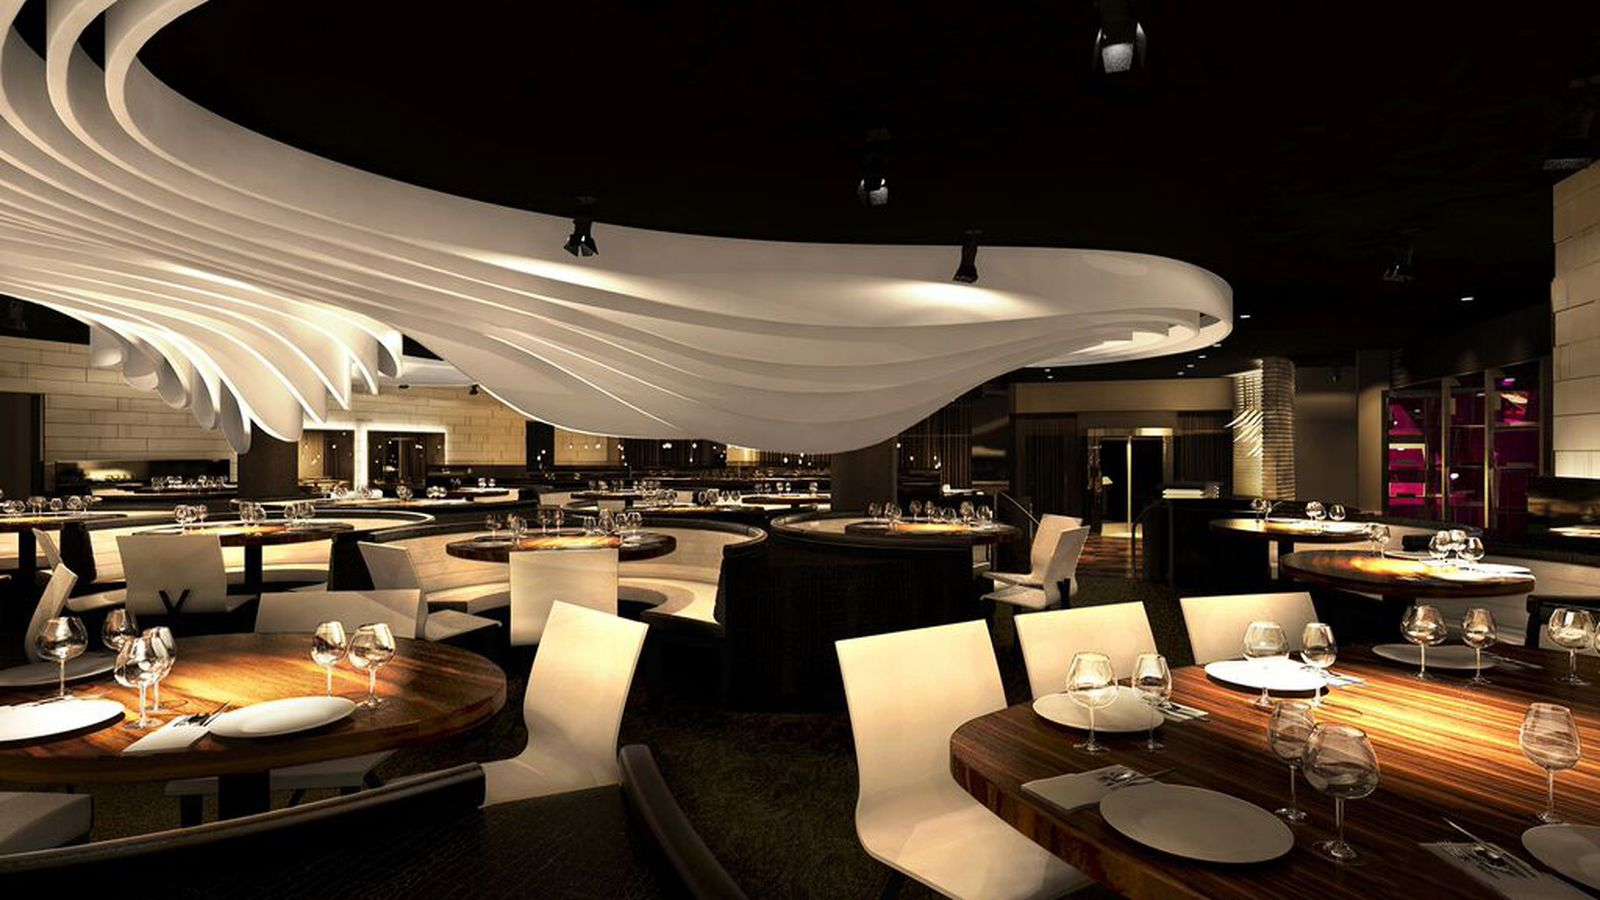 Stk Chicago Reveals Renderings Of The Sexiest Steakhouse